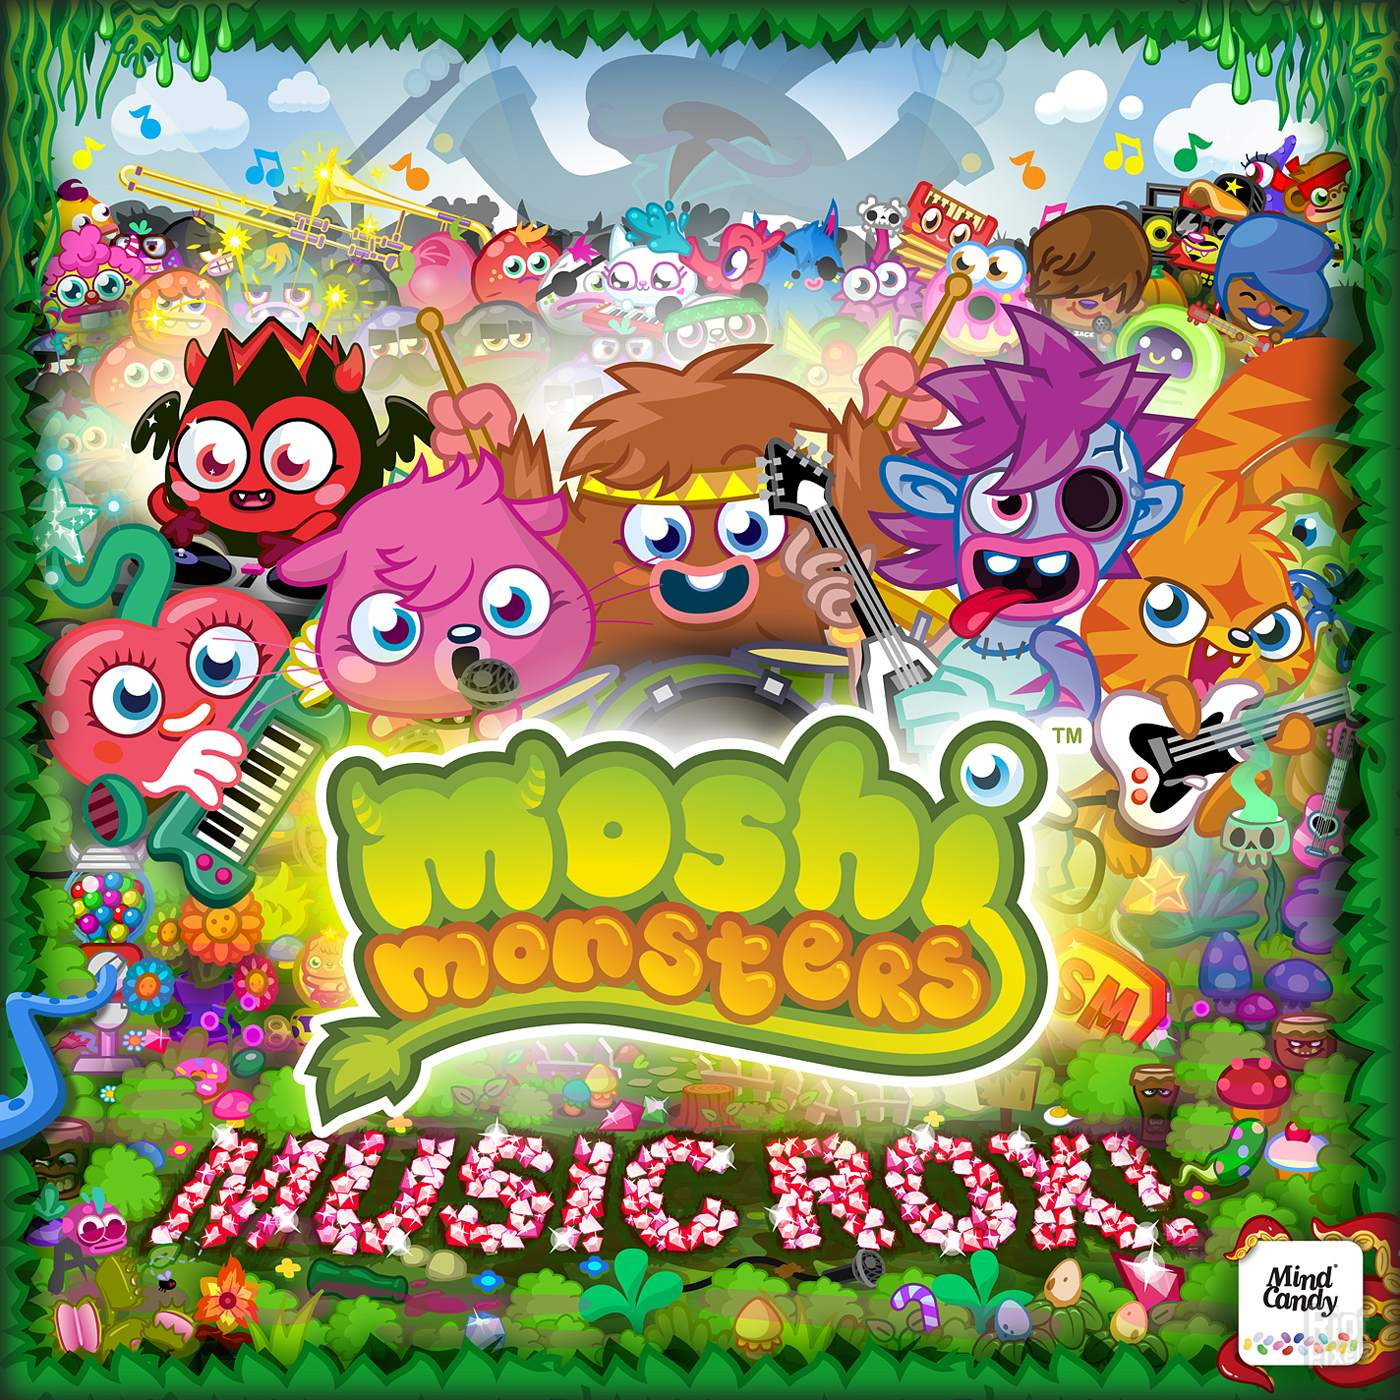 Lets be honest, Moshi Monsters is a lot more fun when you have a lot of codes to use while playing. These Moshi Monsters codes are used for many different things including rox, clothing items, seeds and even house decorations.